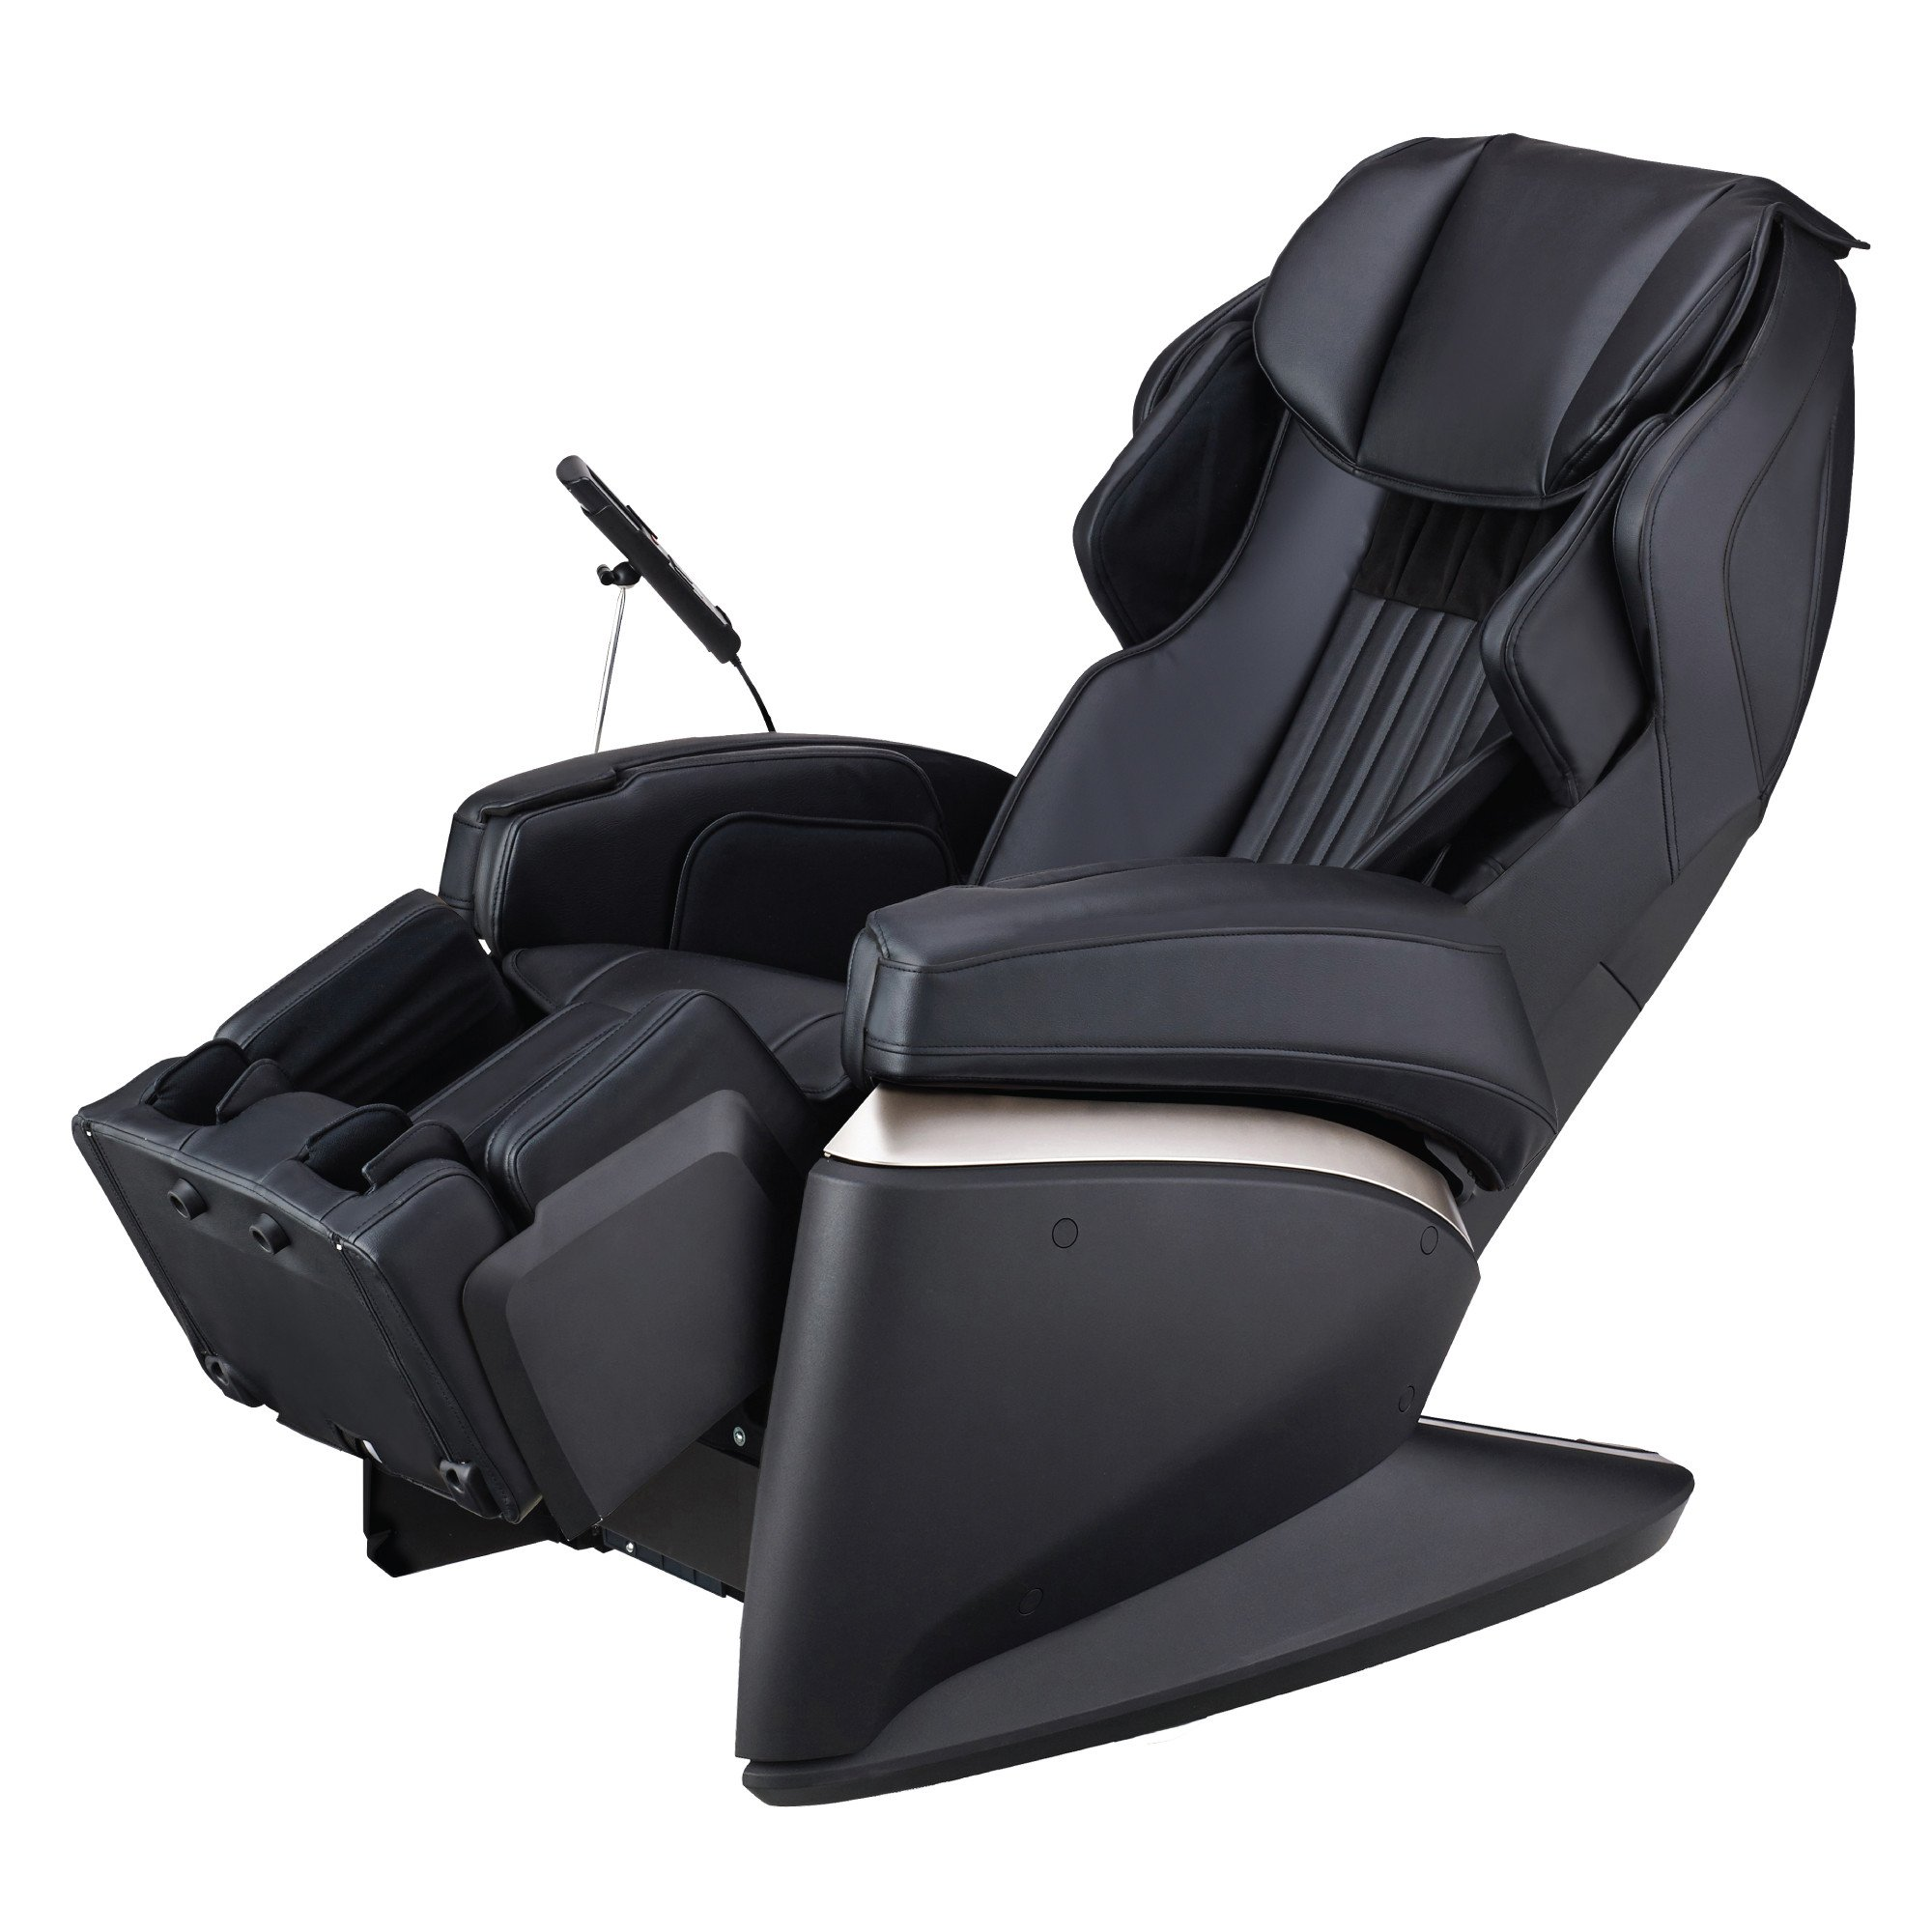 Osaki Japan 4S Premium Massage Chair - Black  - Front Angle View